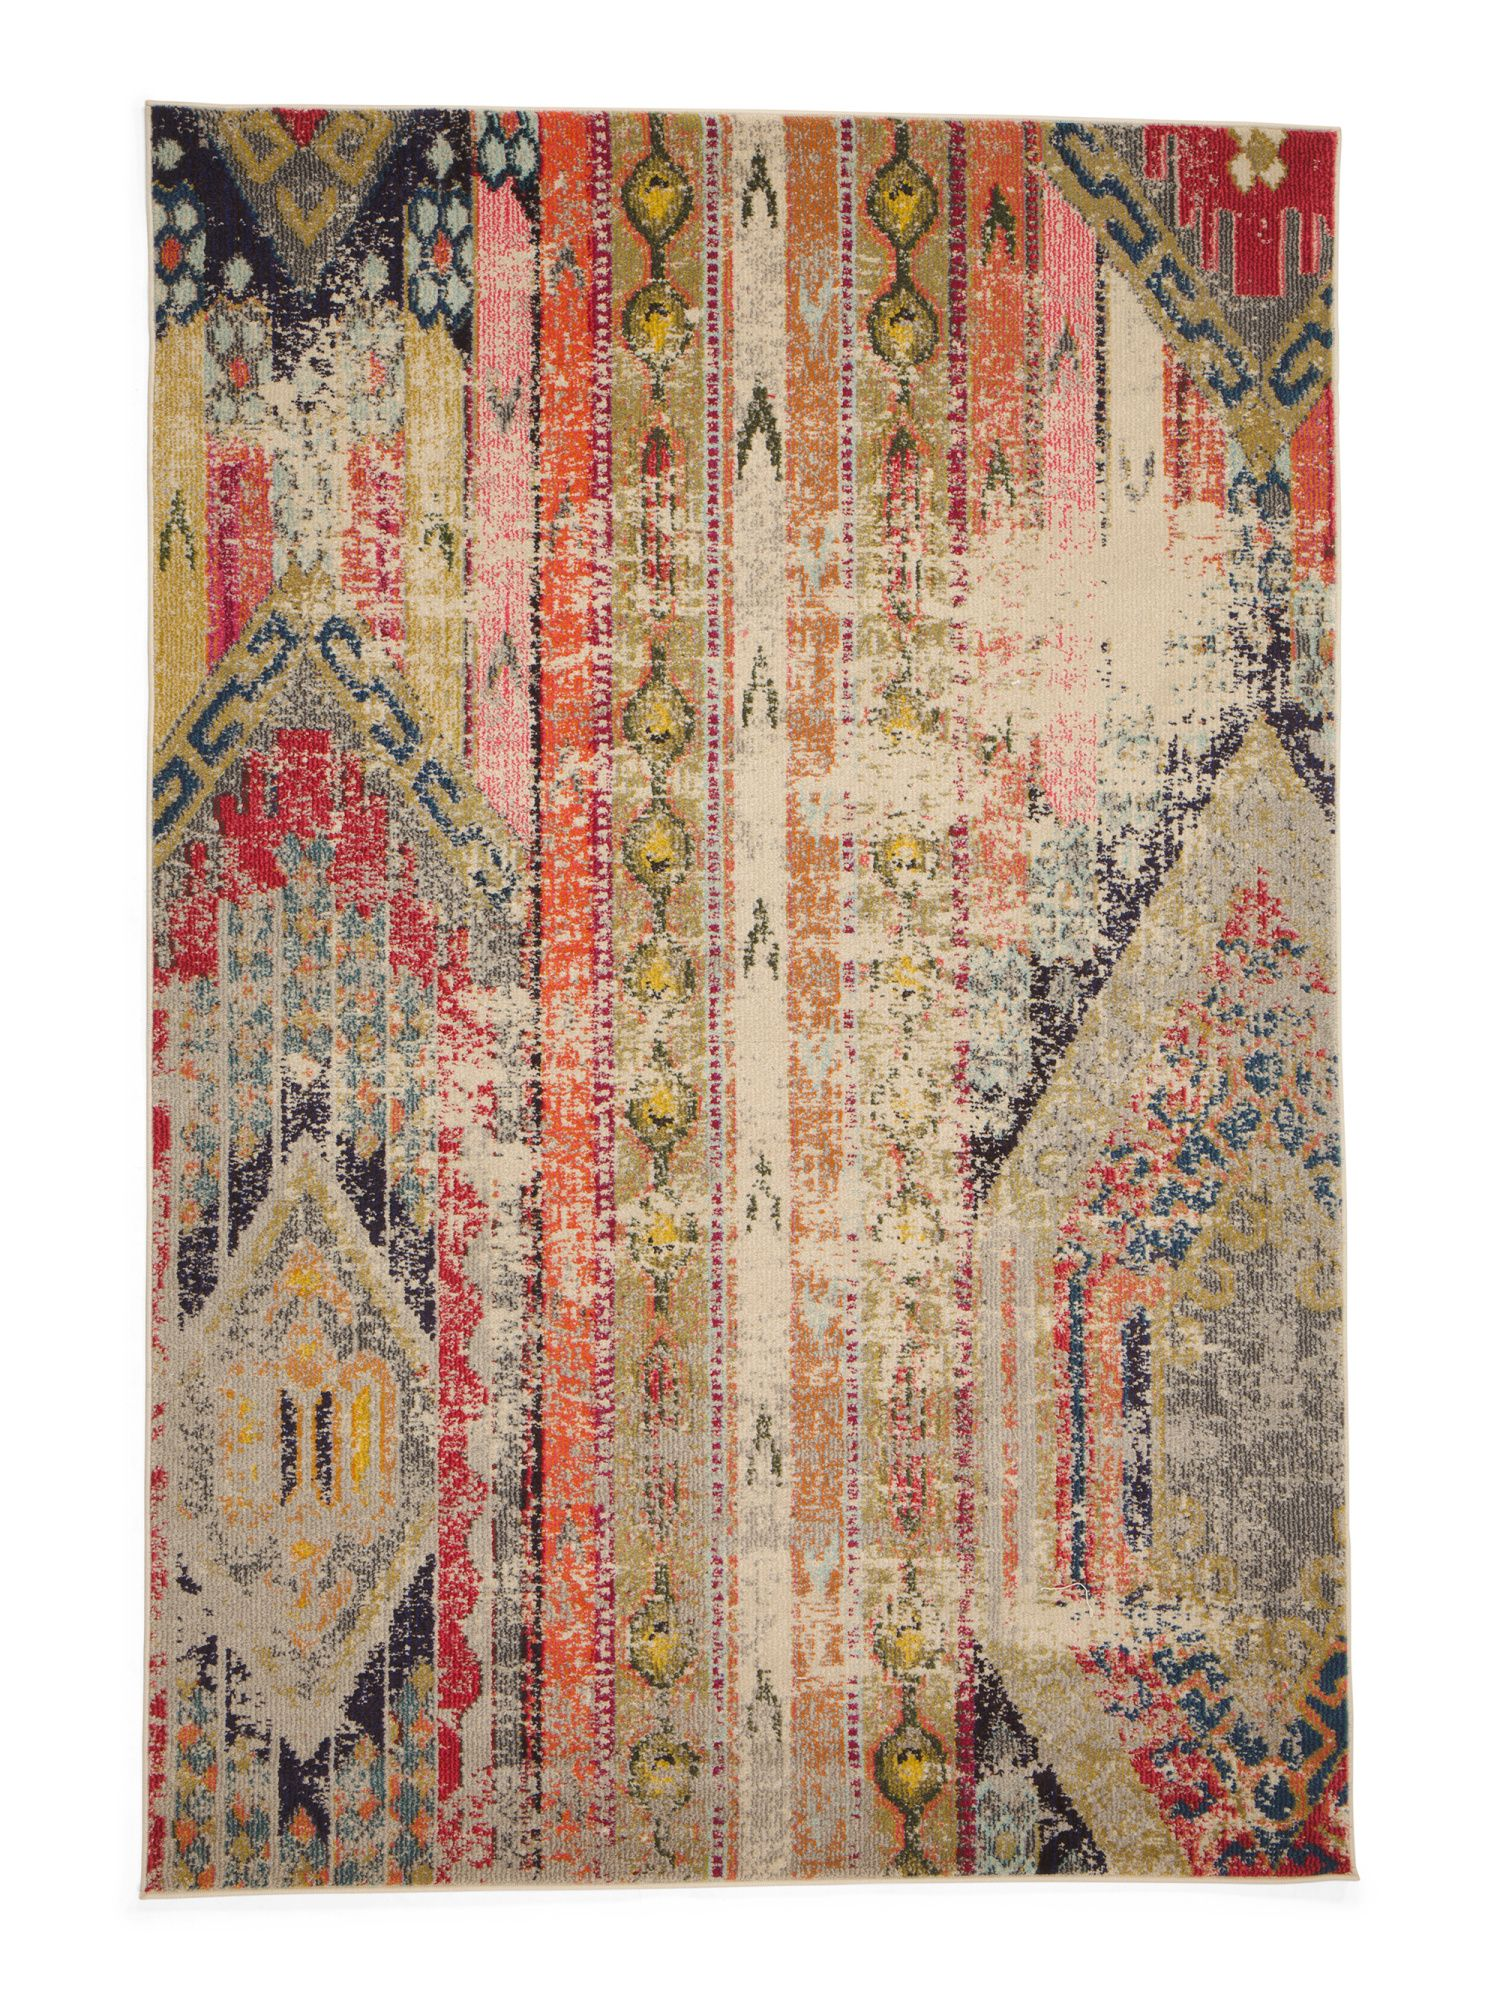 Made In Turkey 5x7 Abstract Area Rug Rugs T J Maxx Area Rugs